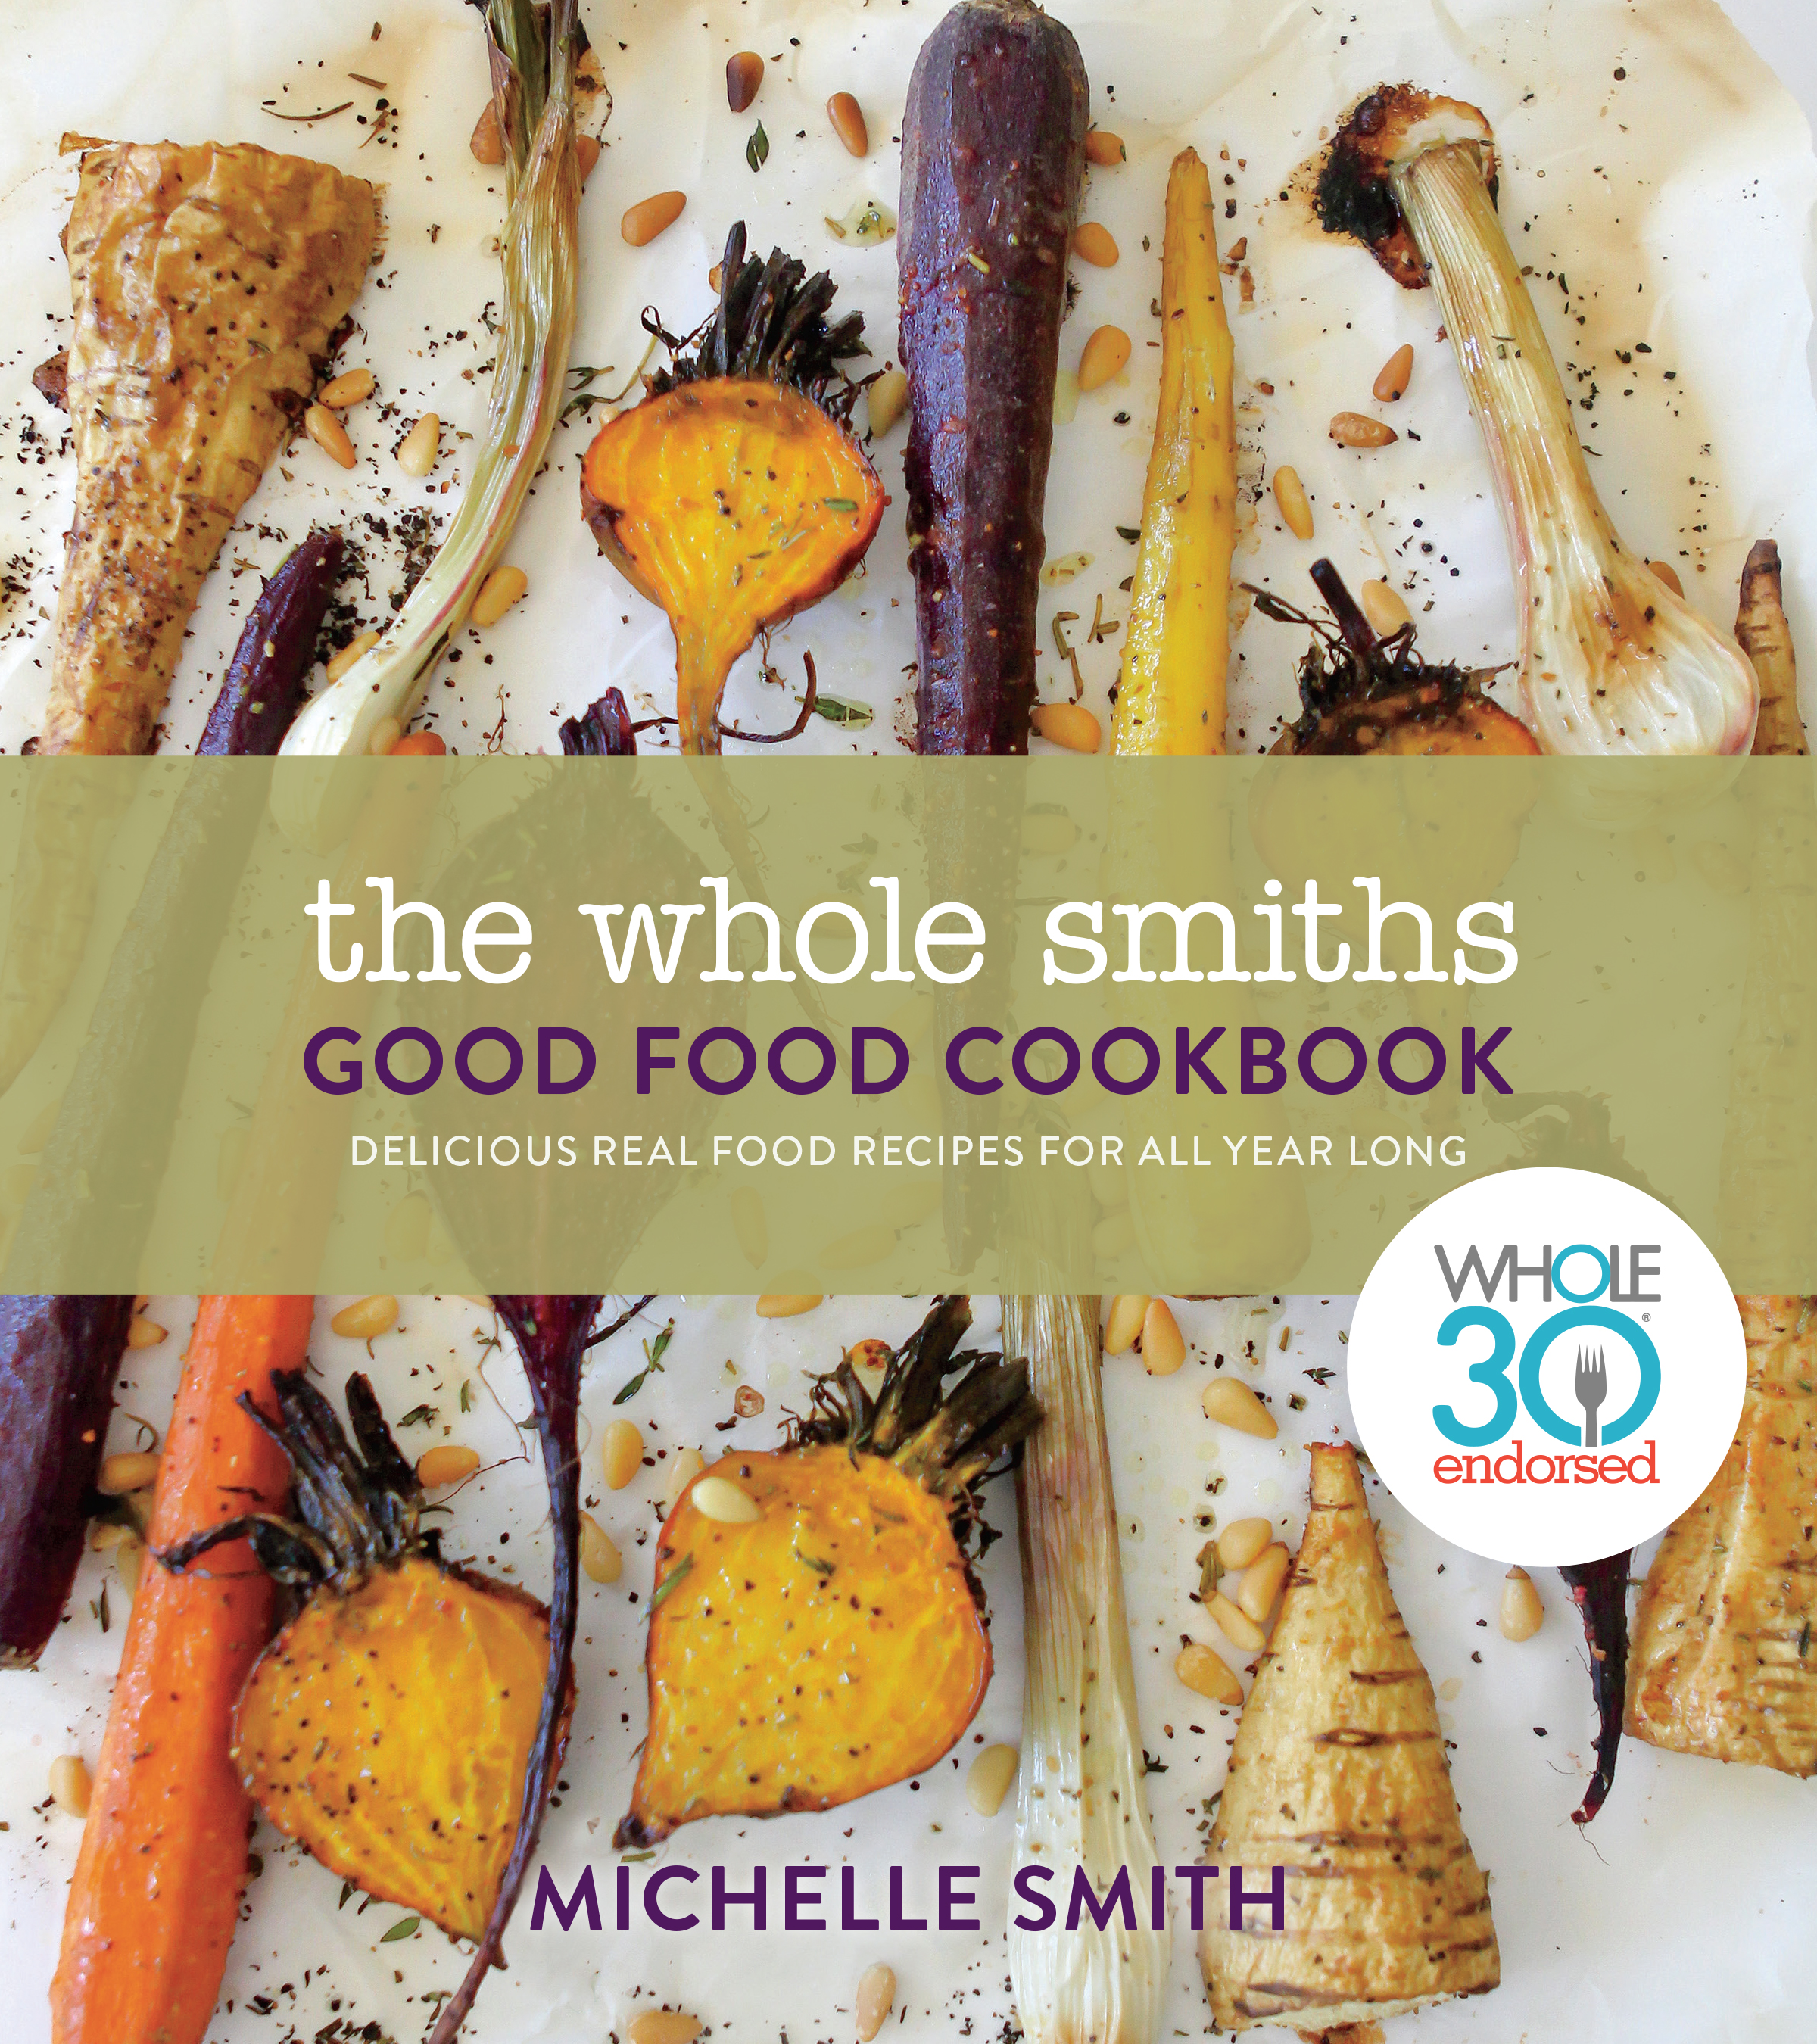 The good food cookbook the whole smiths pre order your copy of the whole smiths good food cookbook today its whole30 forumfinder Gallery